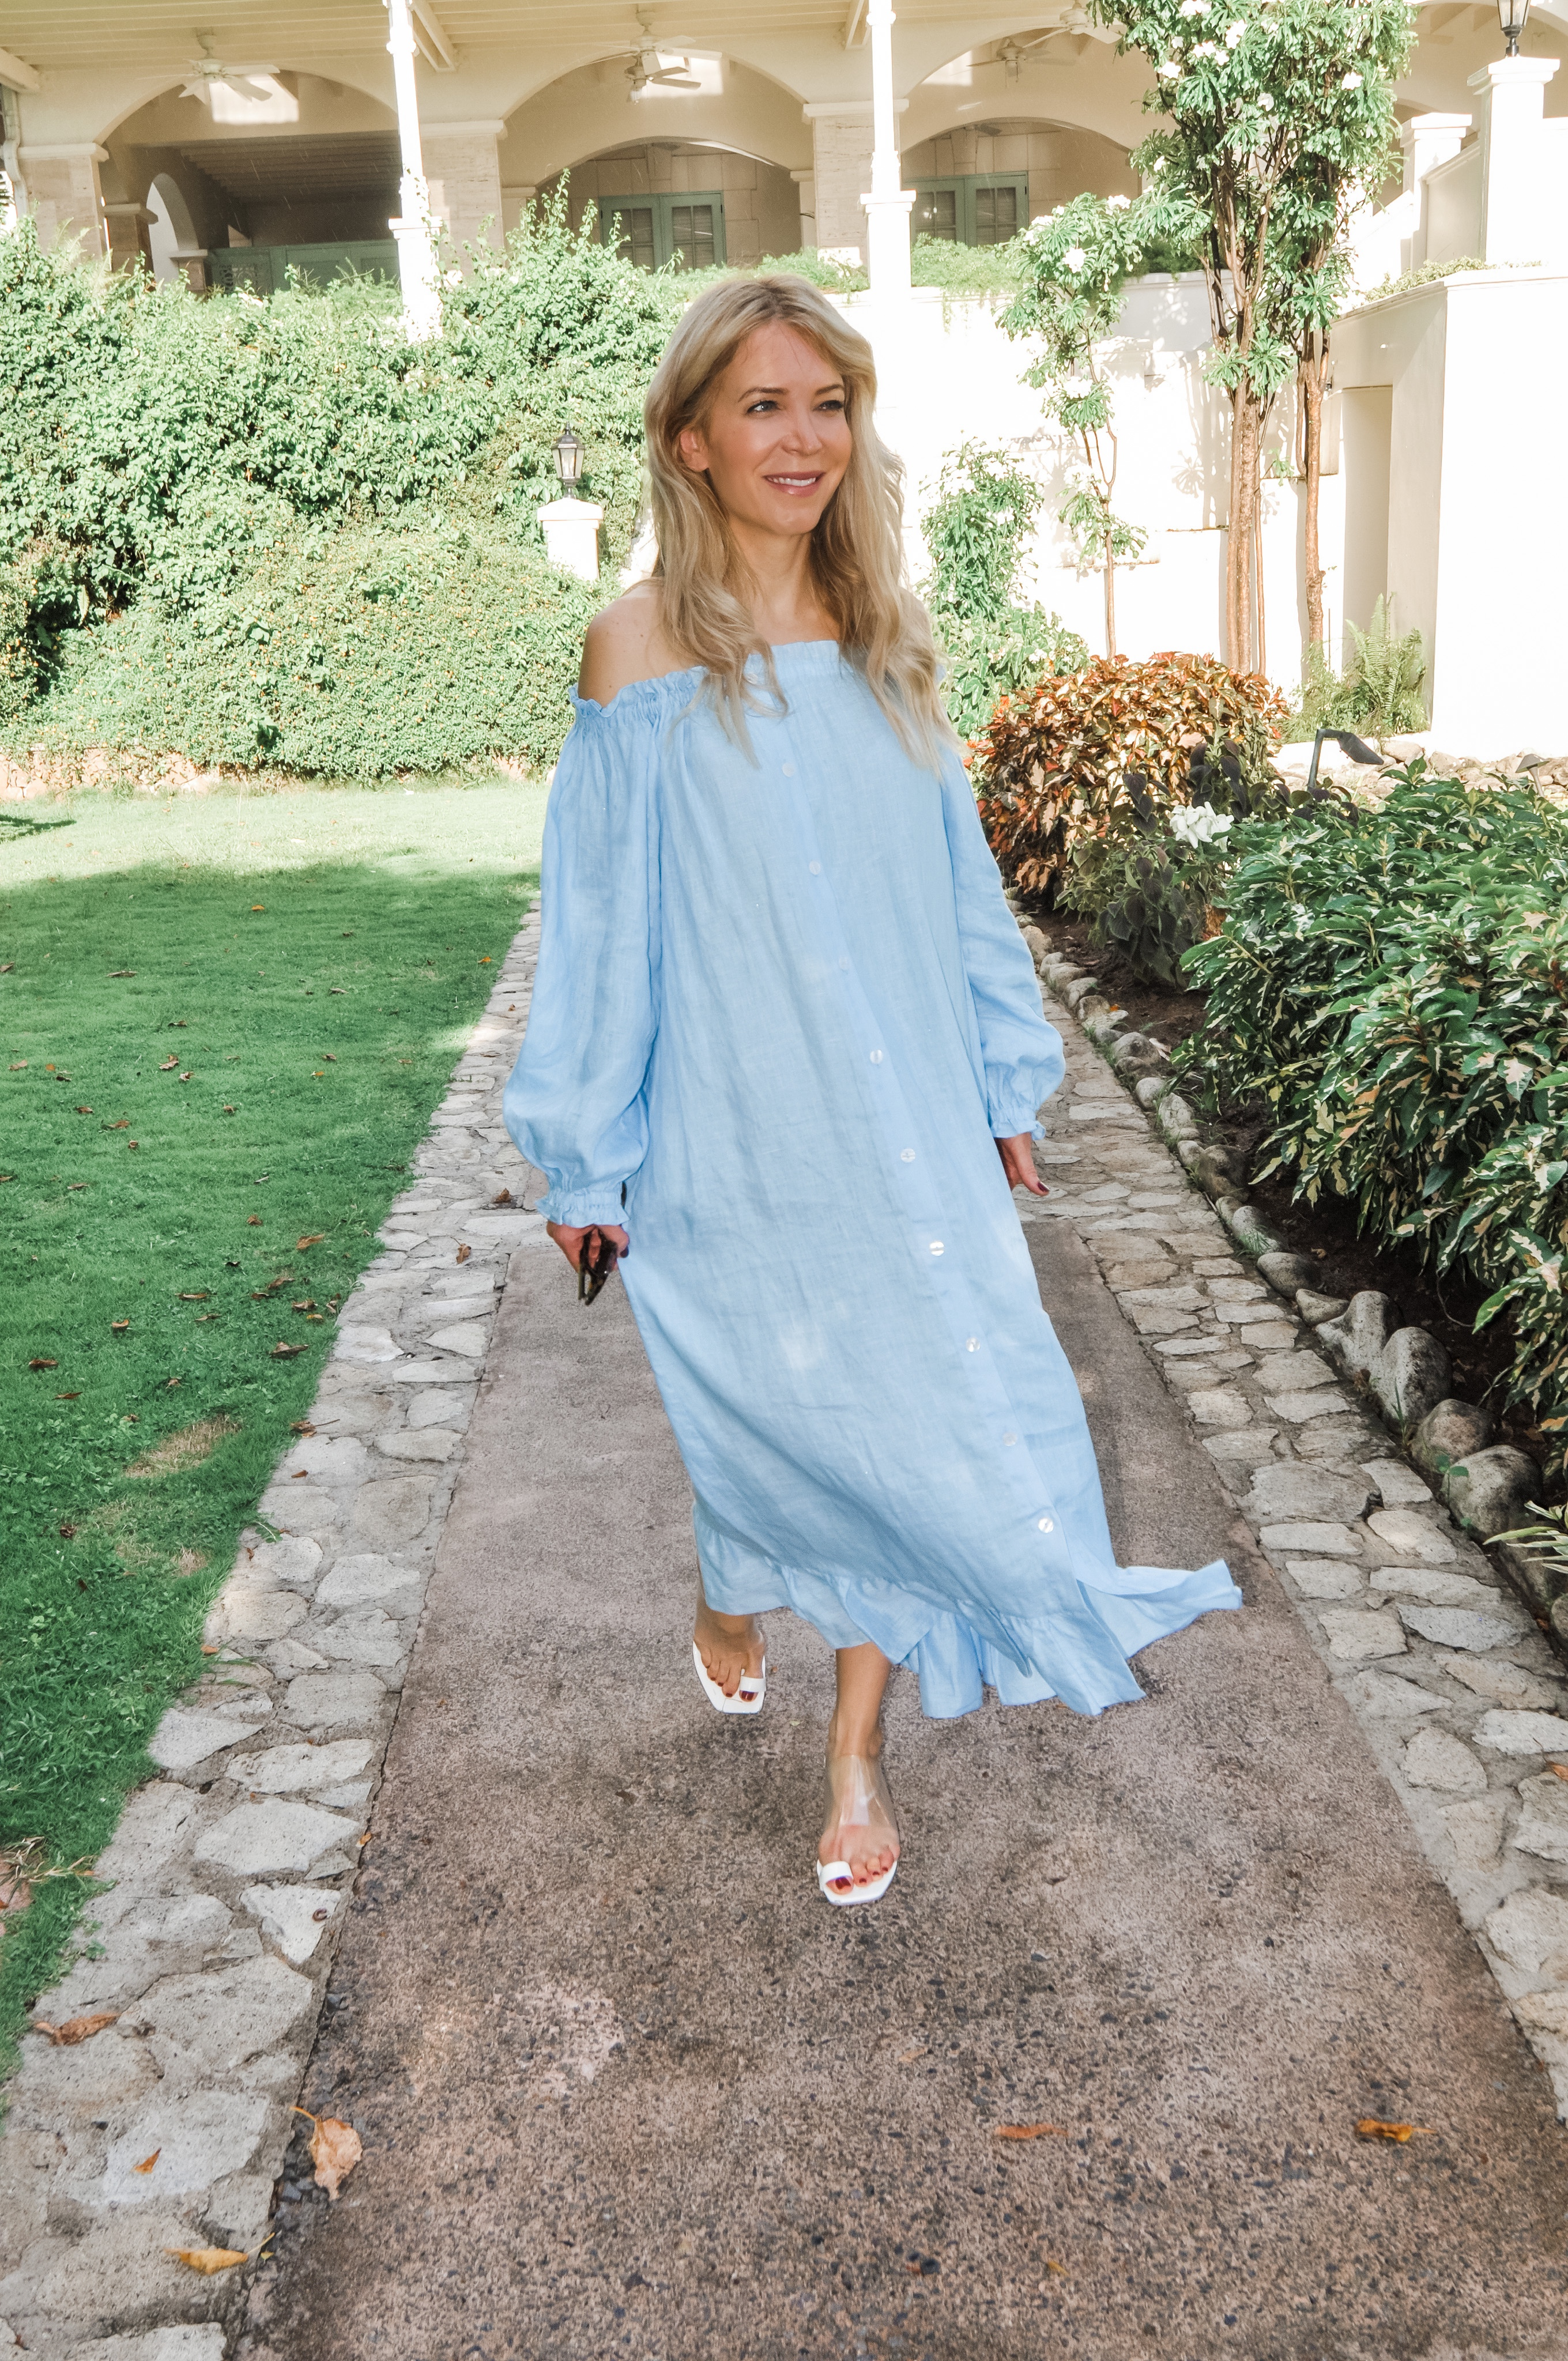 www.abouttheoutfits.com, About the Outfits, Laura Bonner, Daily Sleeper, The Sleeper, Linen summer dress, NYC fashion blogger, Sugar Beach Viceroy